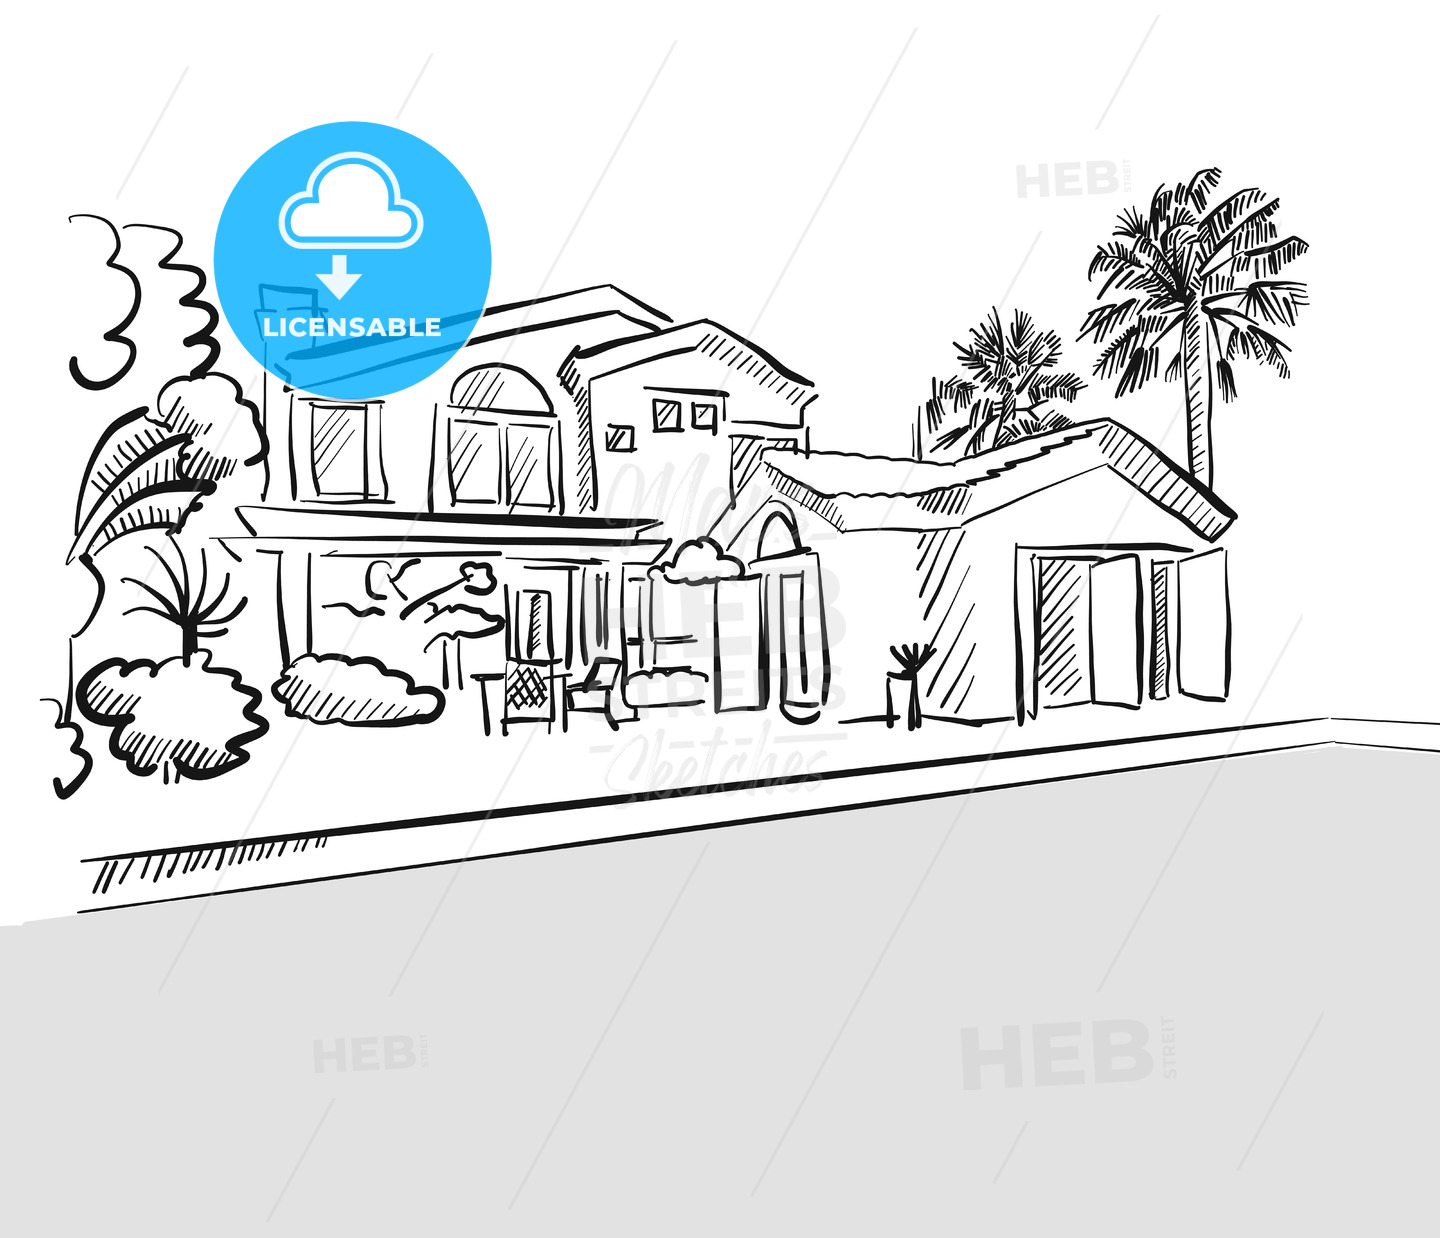 Sketch dream house among palm trees - Hebstreits